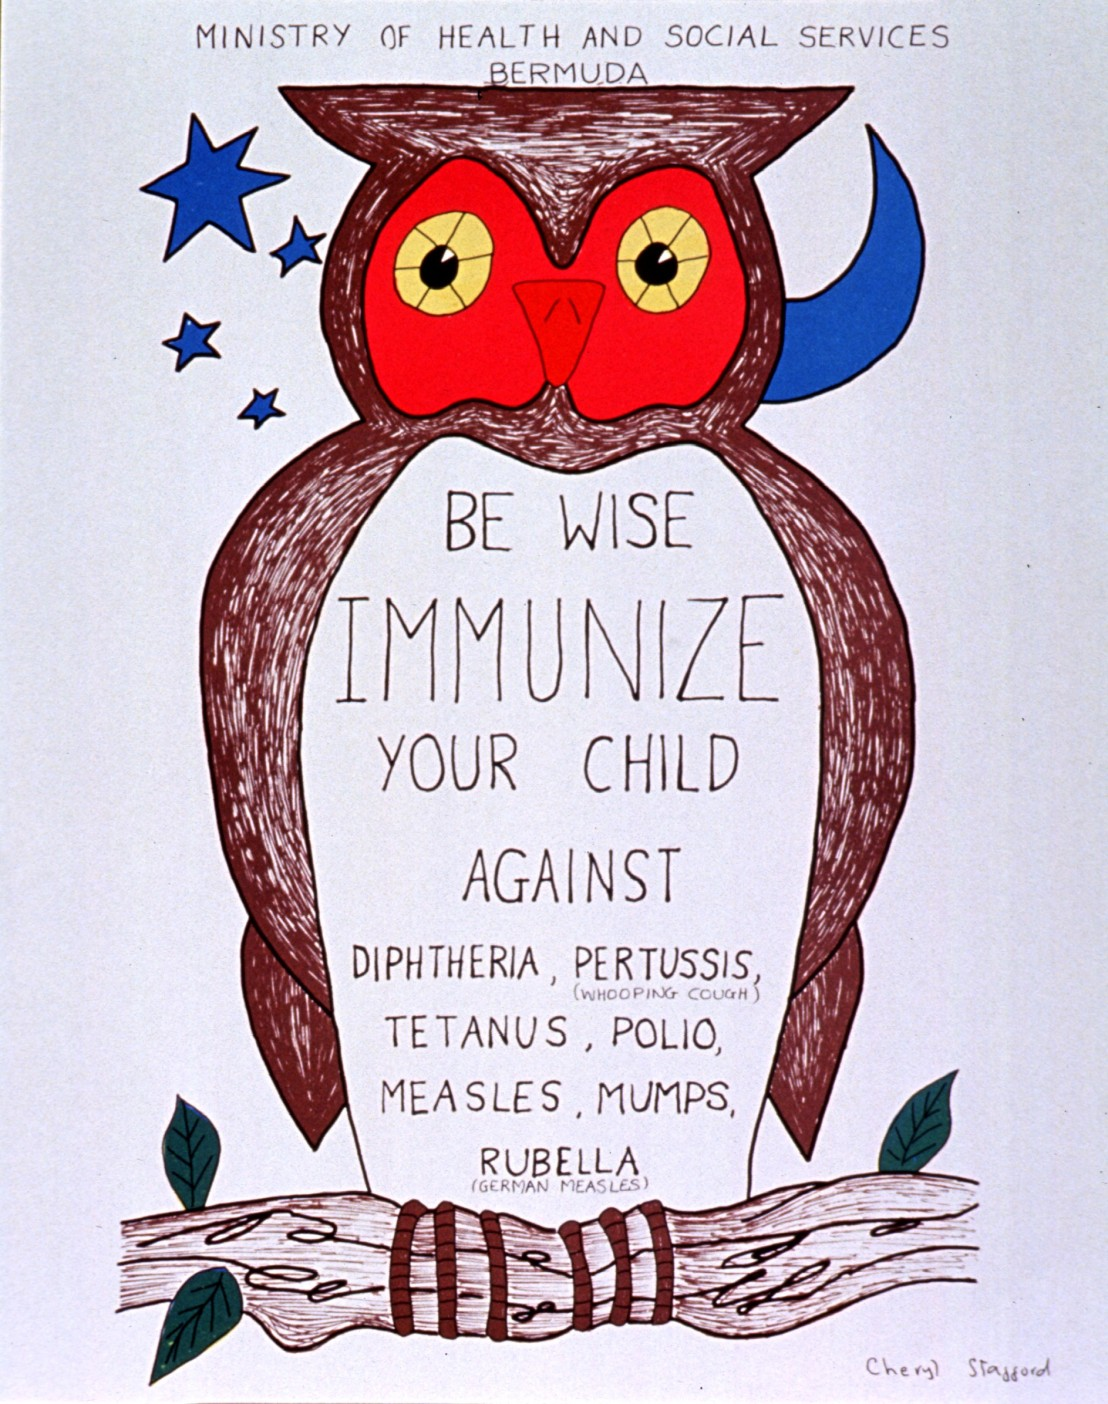 Be Wise - Immunize Your Child